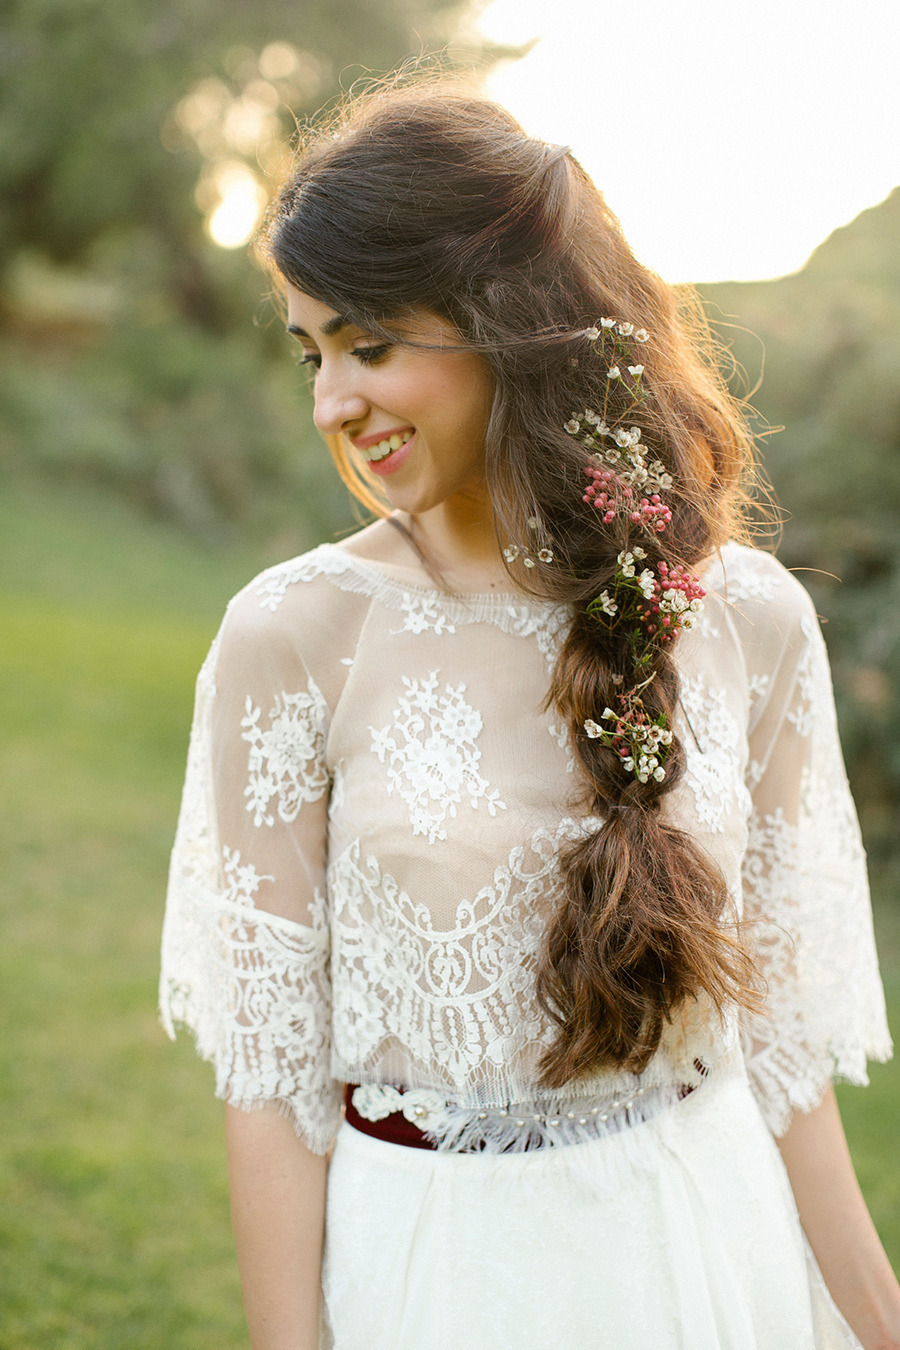 winter wedding ideas - Boho Chic Wedding Inspiration Shoot from Anna Roussos Photography - annaroussos.com | Read more : https://www.fabmood.com/boho-chic-wedding-inspiration-shoot-anna-roussos-photography